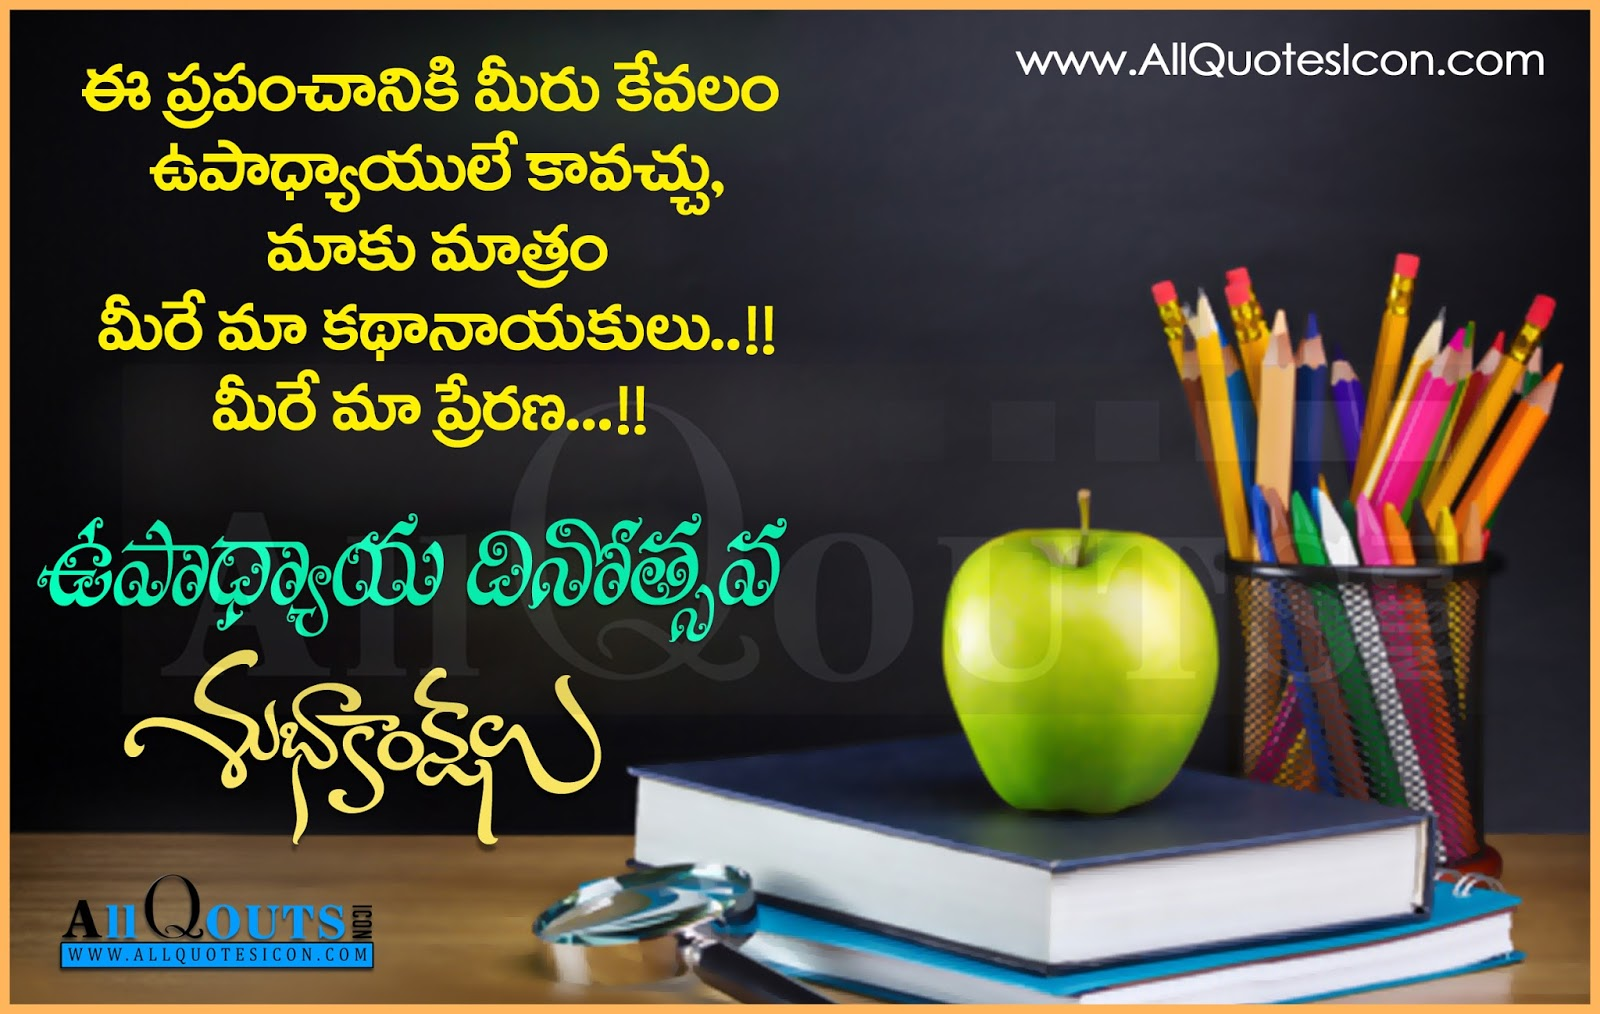 how to wish happy teacher s day in japanese 60 best teachers day wish pictures and images published on august 24, 2016, under images love it 16 having one is the best blessing happy teacher's day.